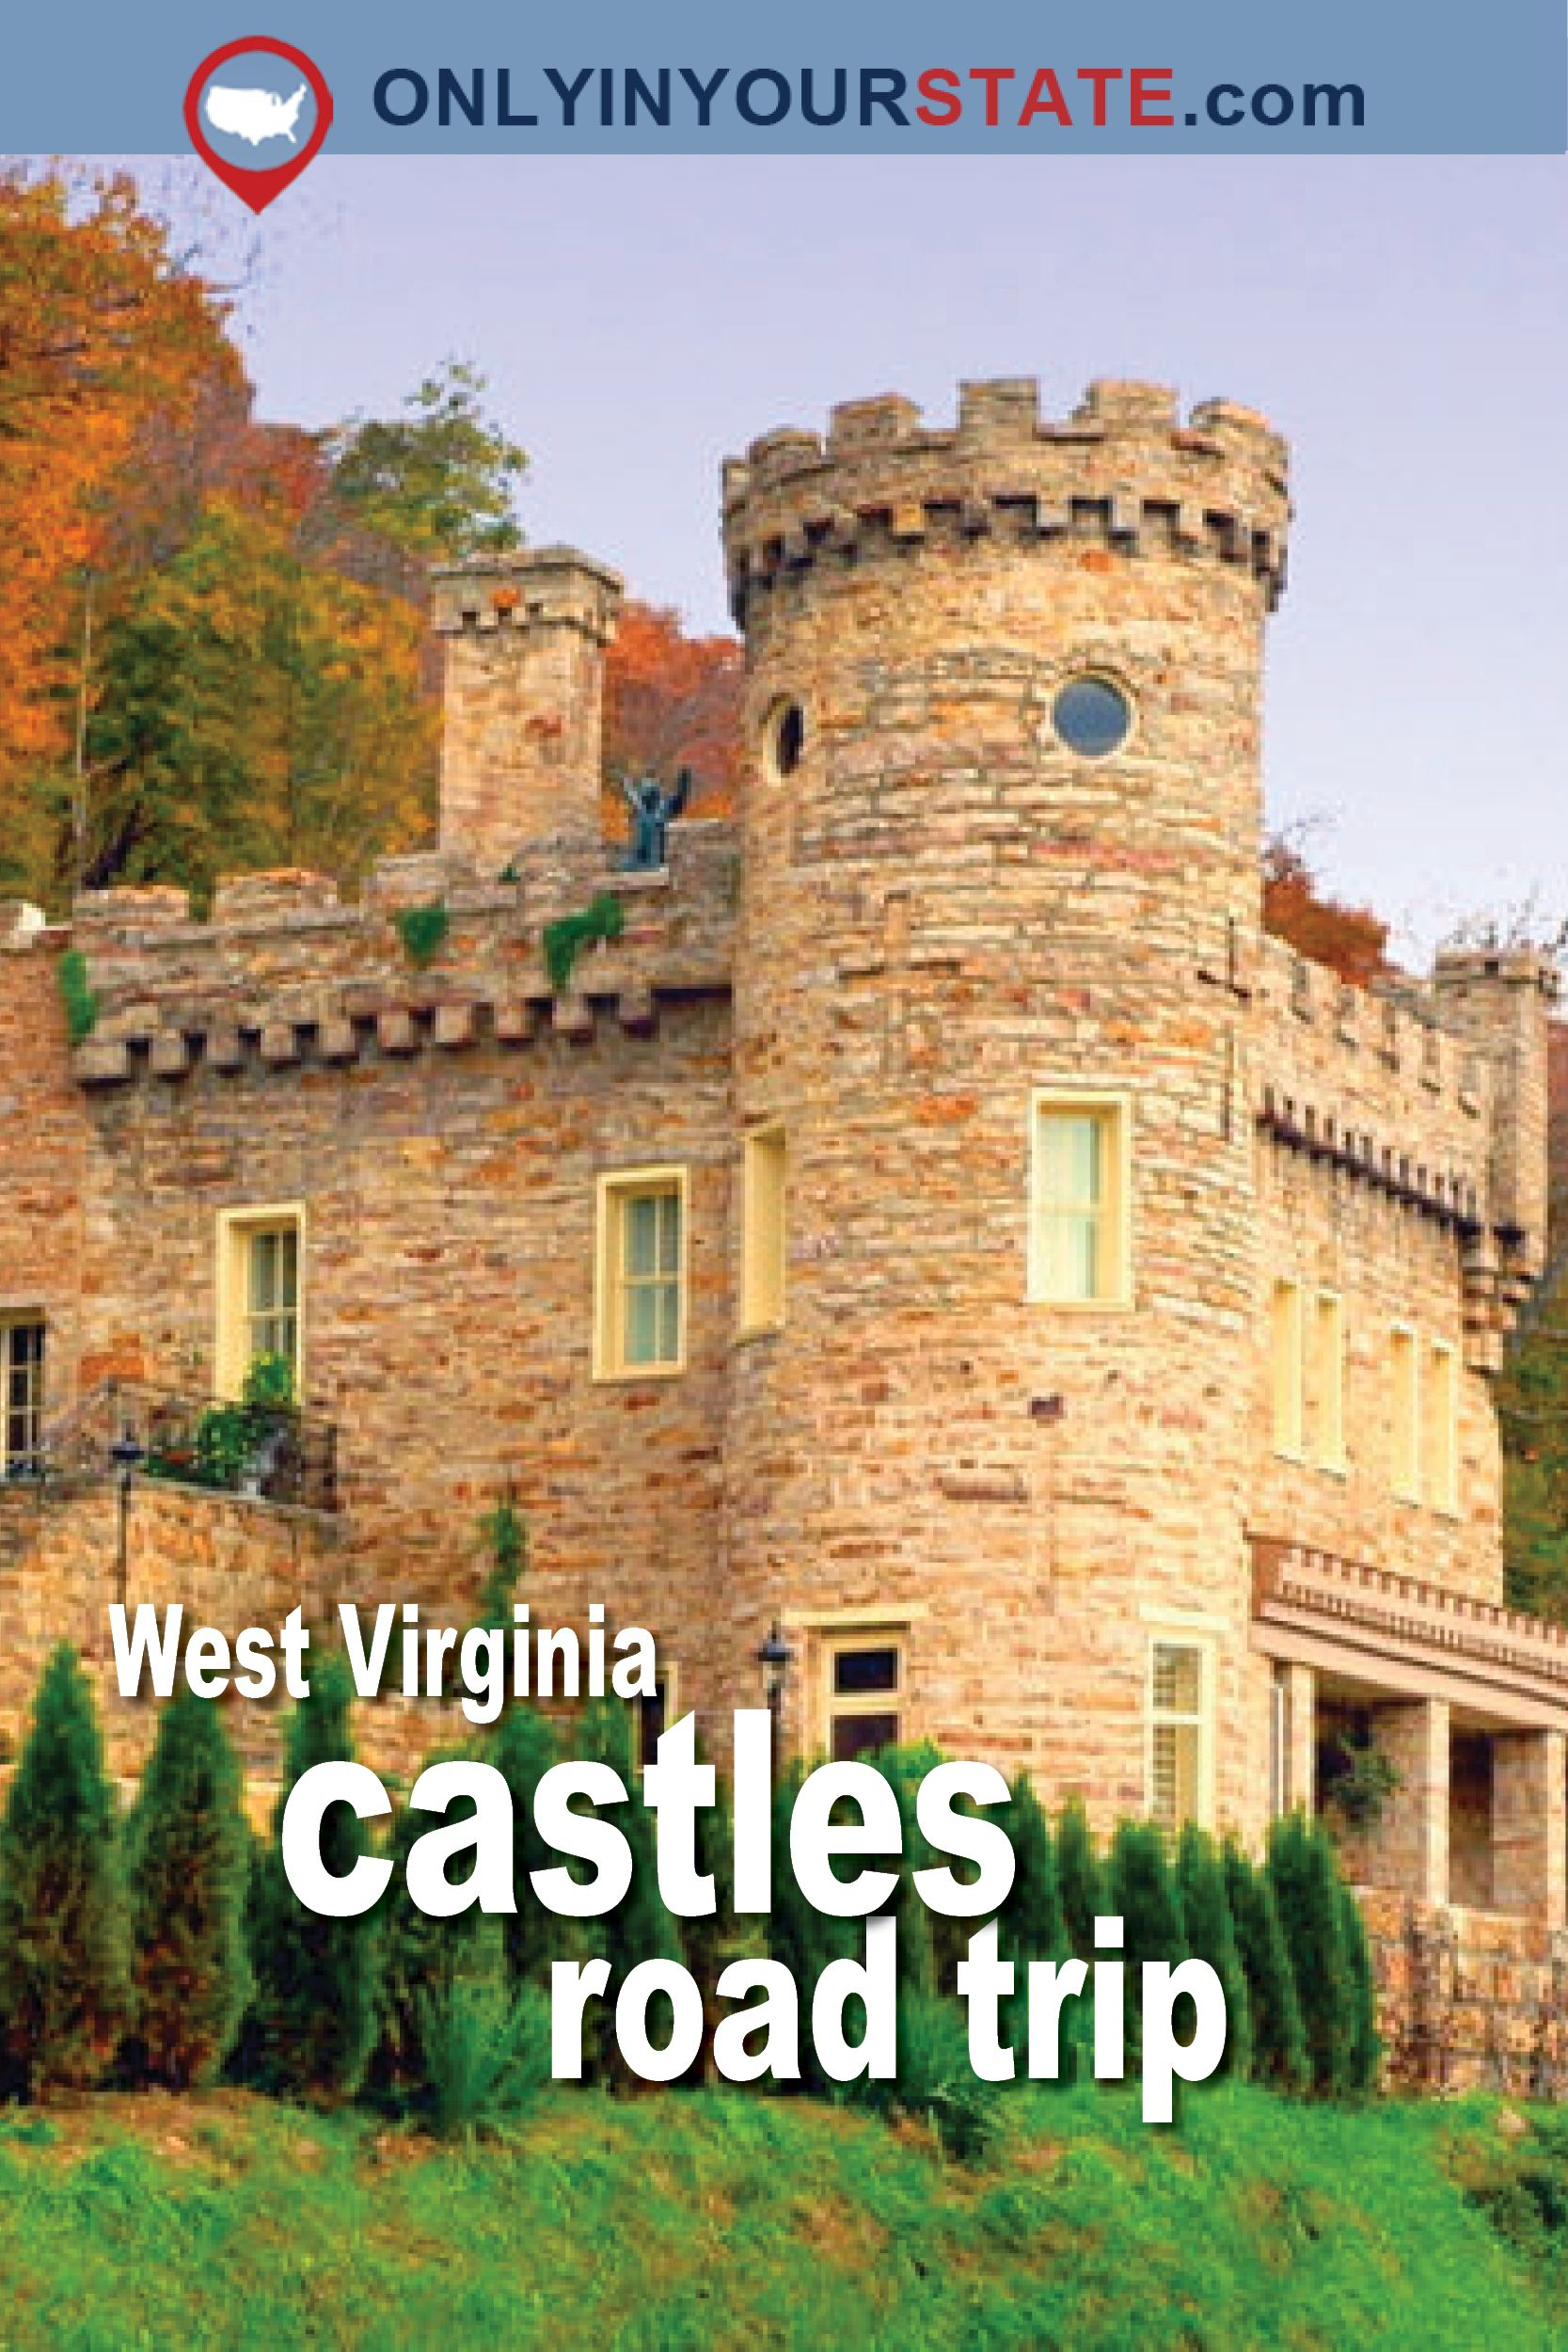 This Road Trip To West Virginia's Most Majestic Castles Is